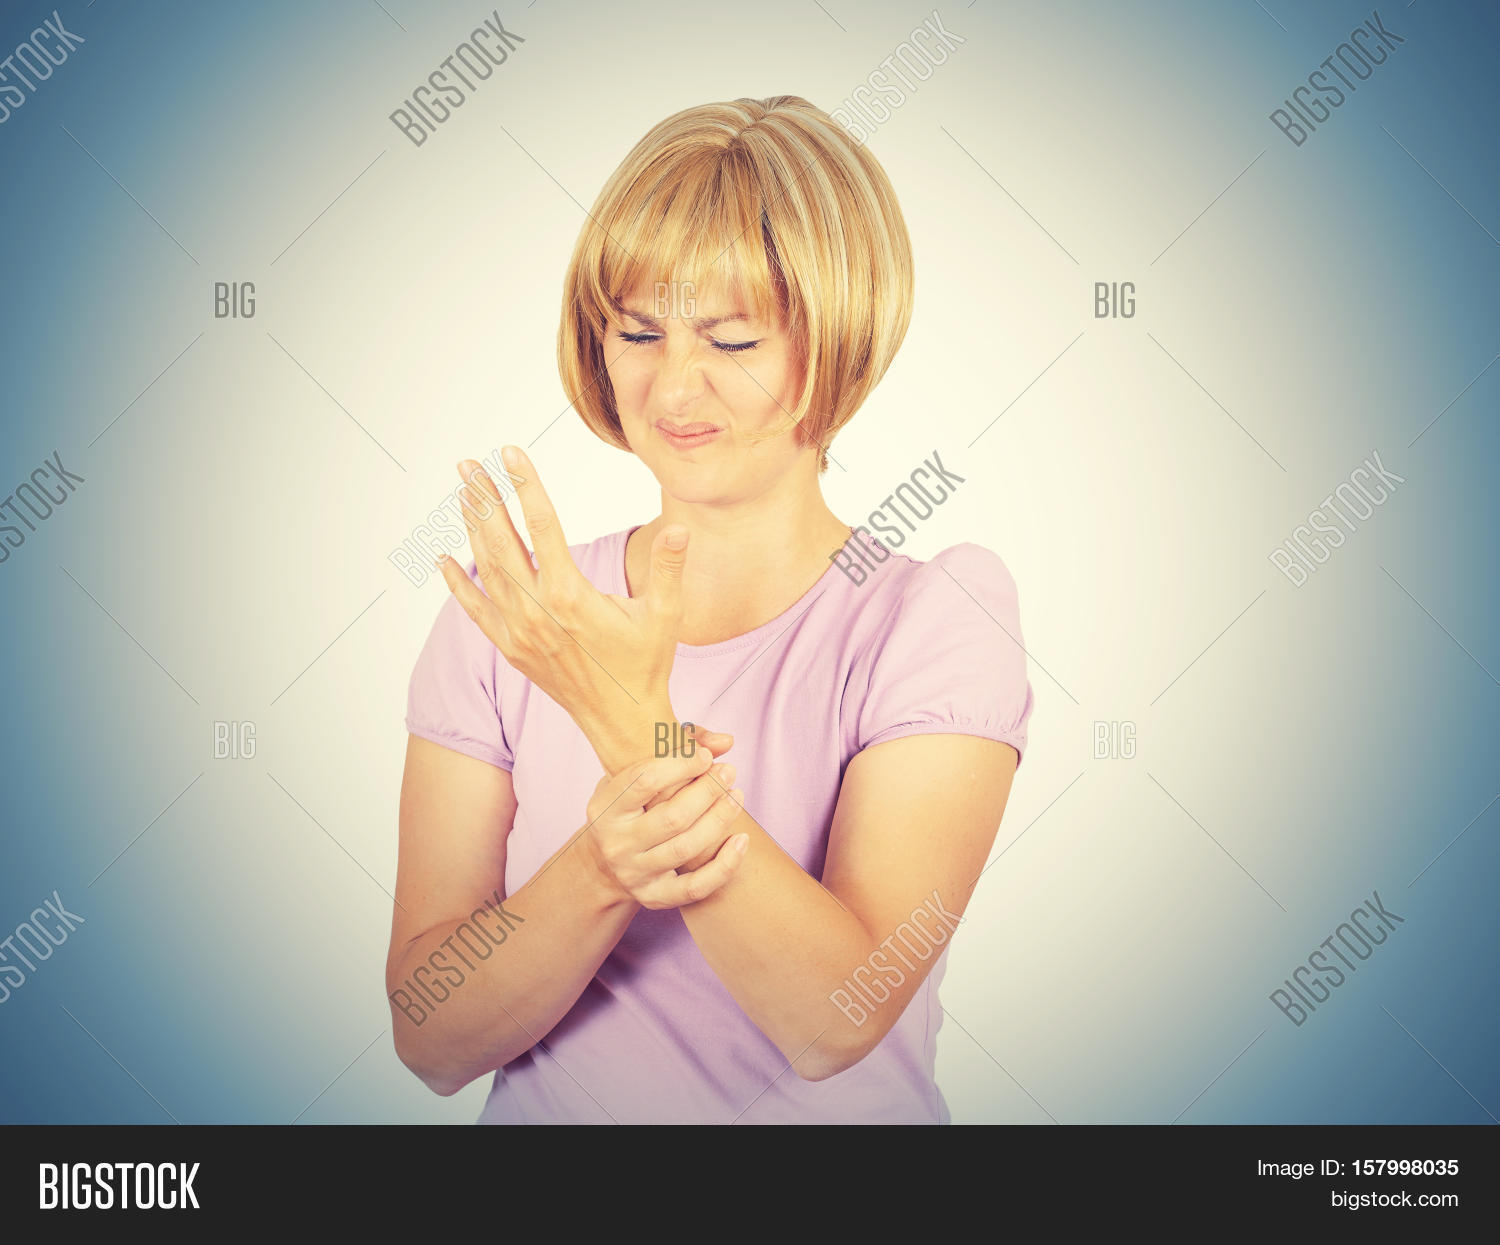 Close-up Portrait Young Woman Holding Her Painful Wrist Isolated On Background.